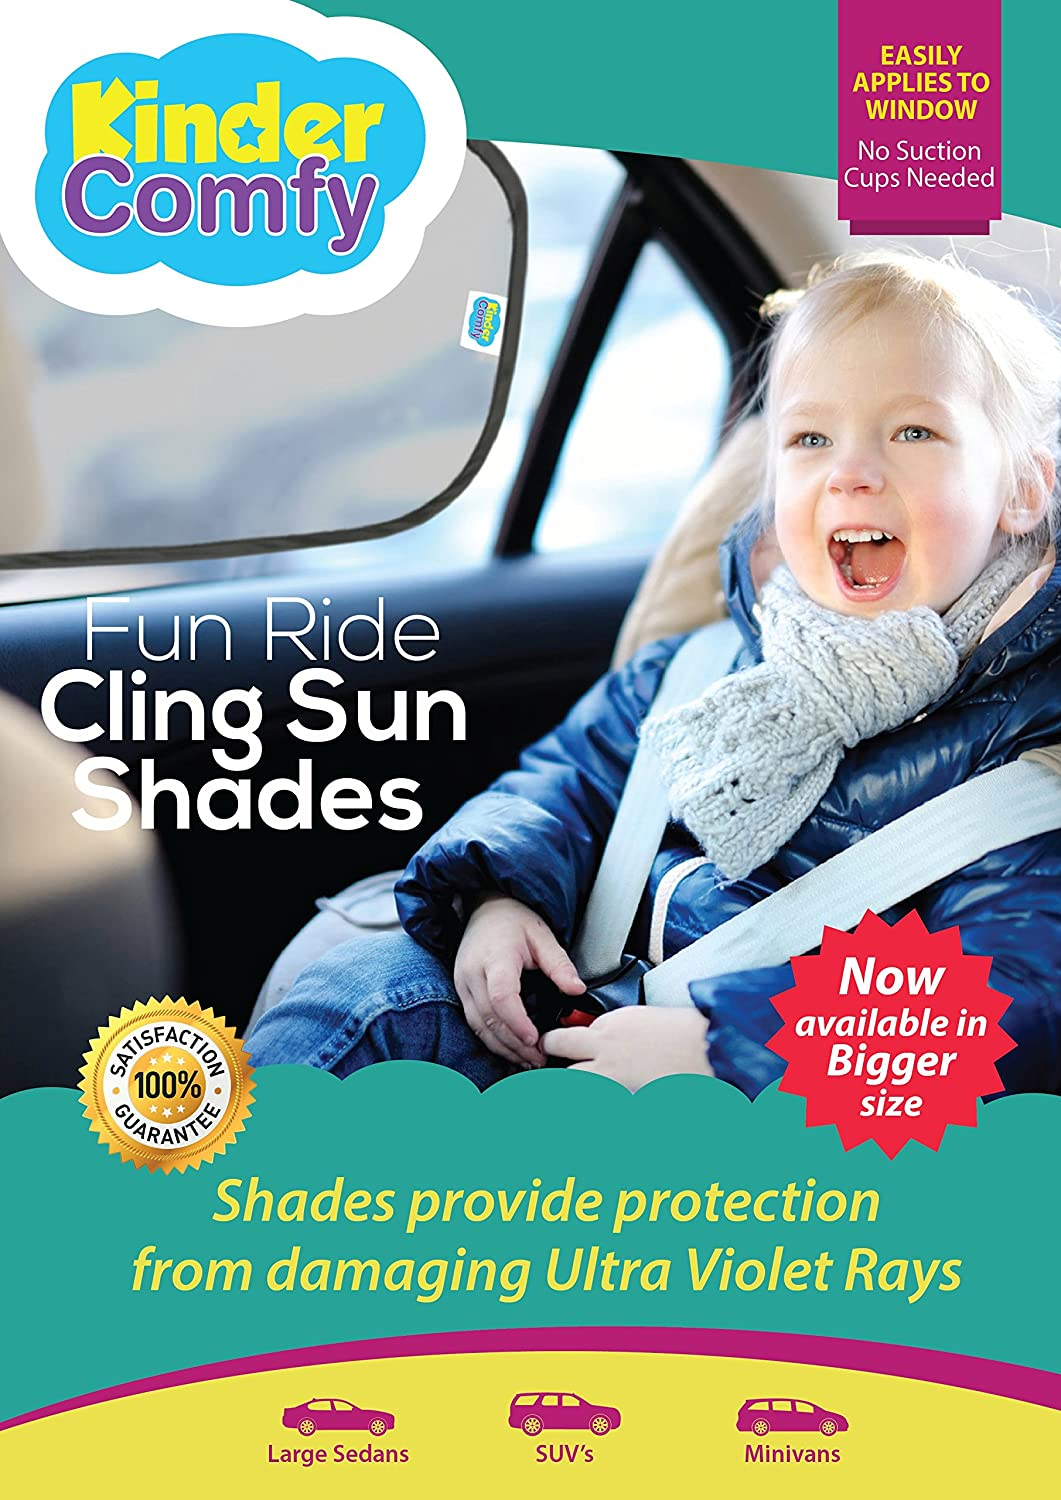 #1 Car Sun Shade (SUVs & Minivans) 2 Pack - Black Sunshade Visor Set for Babies & Kids - Clings To Rear Side Window-Cooler Car Interior- Easy Installation - Blocks 98% of UV Rays-. Bonus Gifts Kinder Comfy